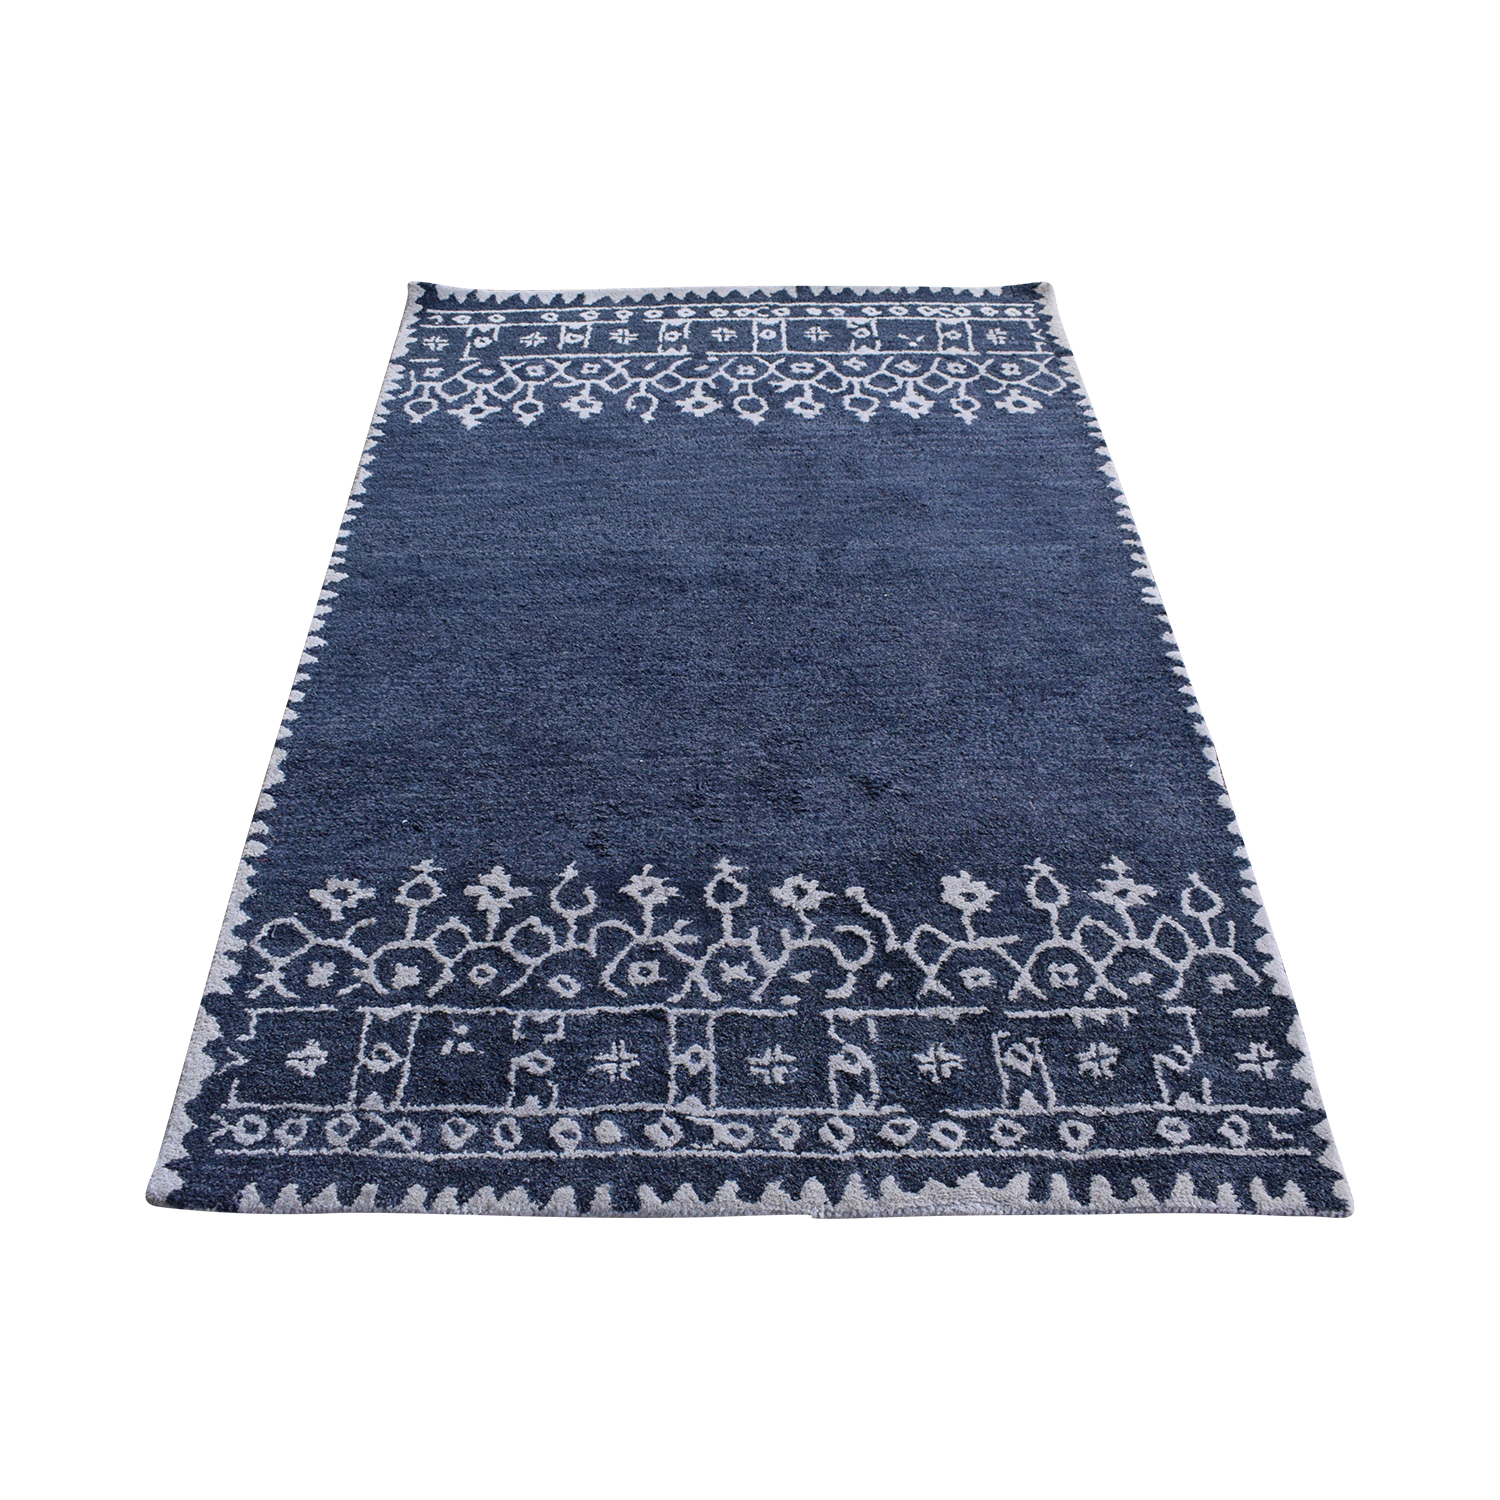 Pottery Barn Pottery Barn Desa Bordered Wool Rug ma